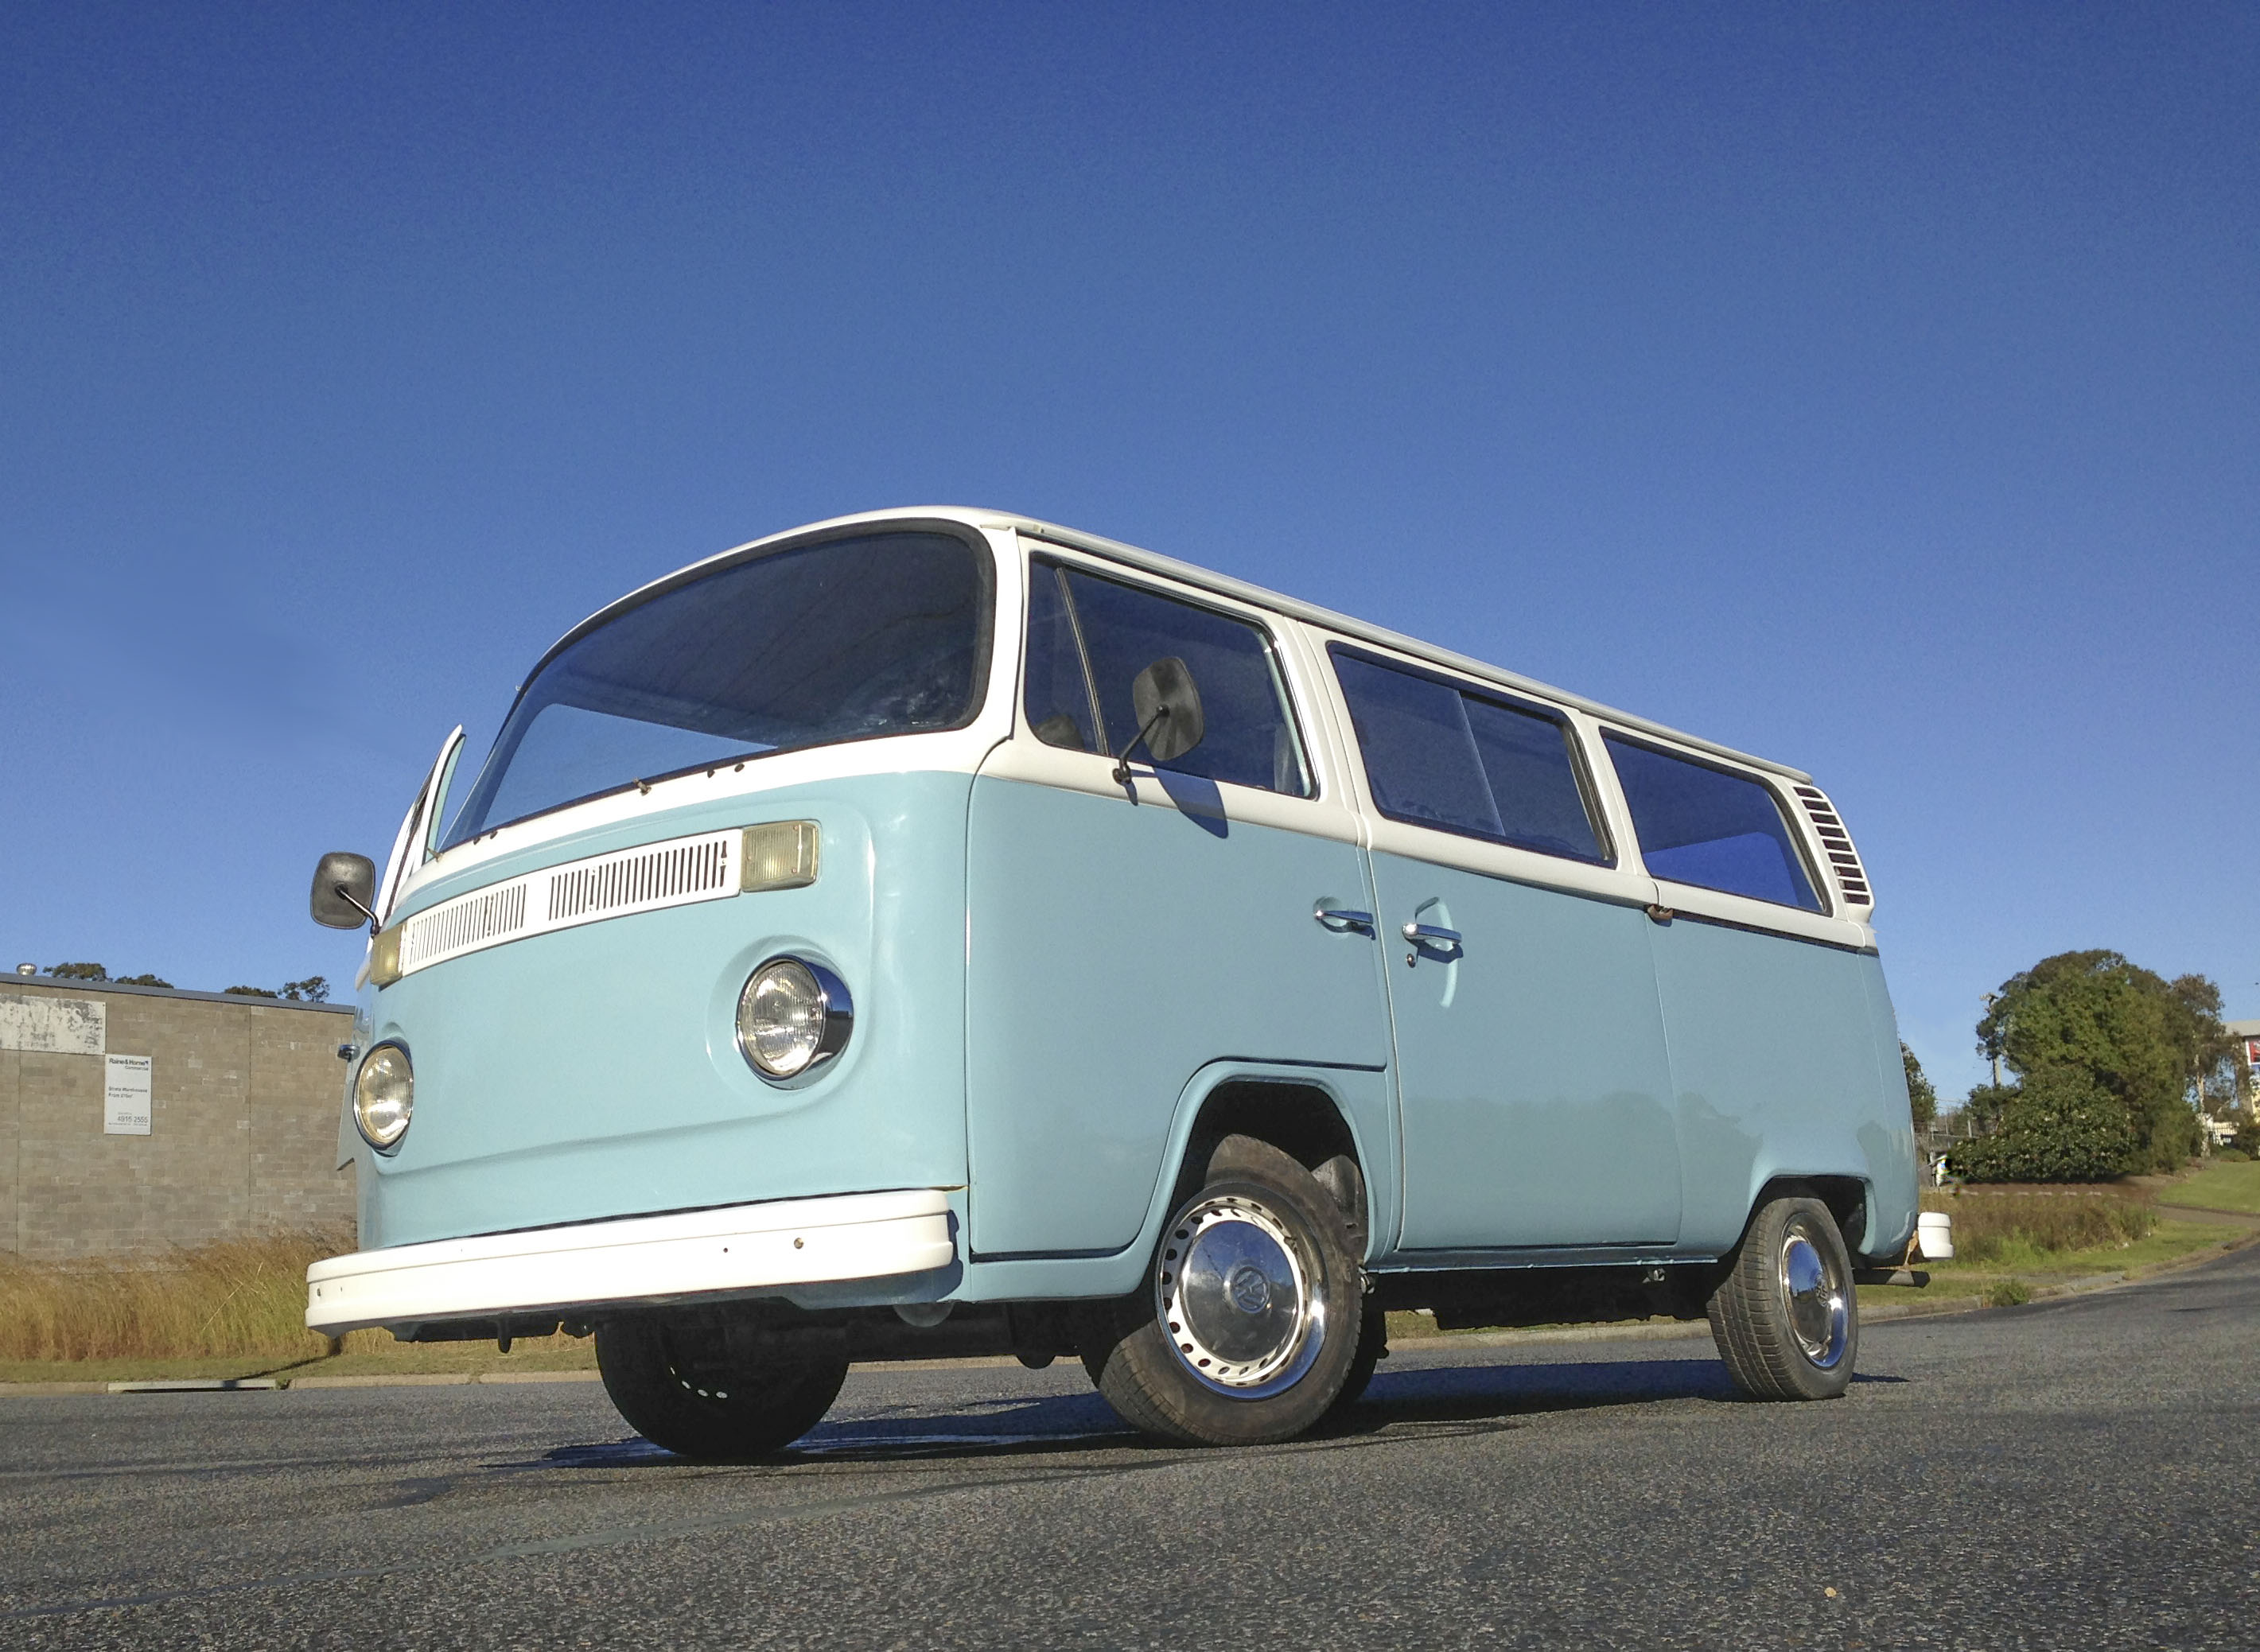 Betty Blue - The Lowered 1.8 Litre Twin Exhaust VW Kombi ...